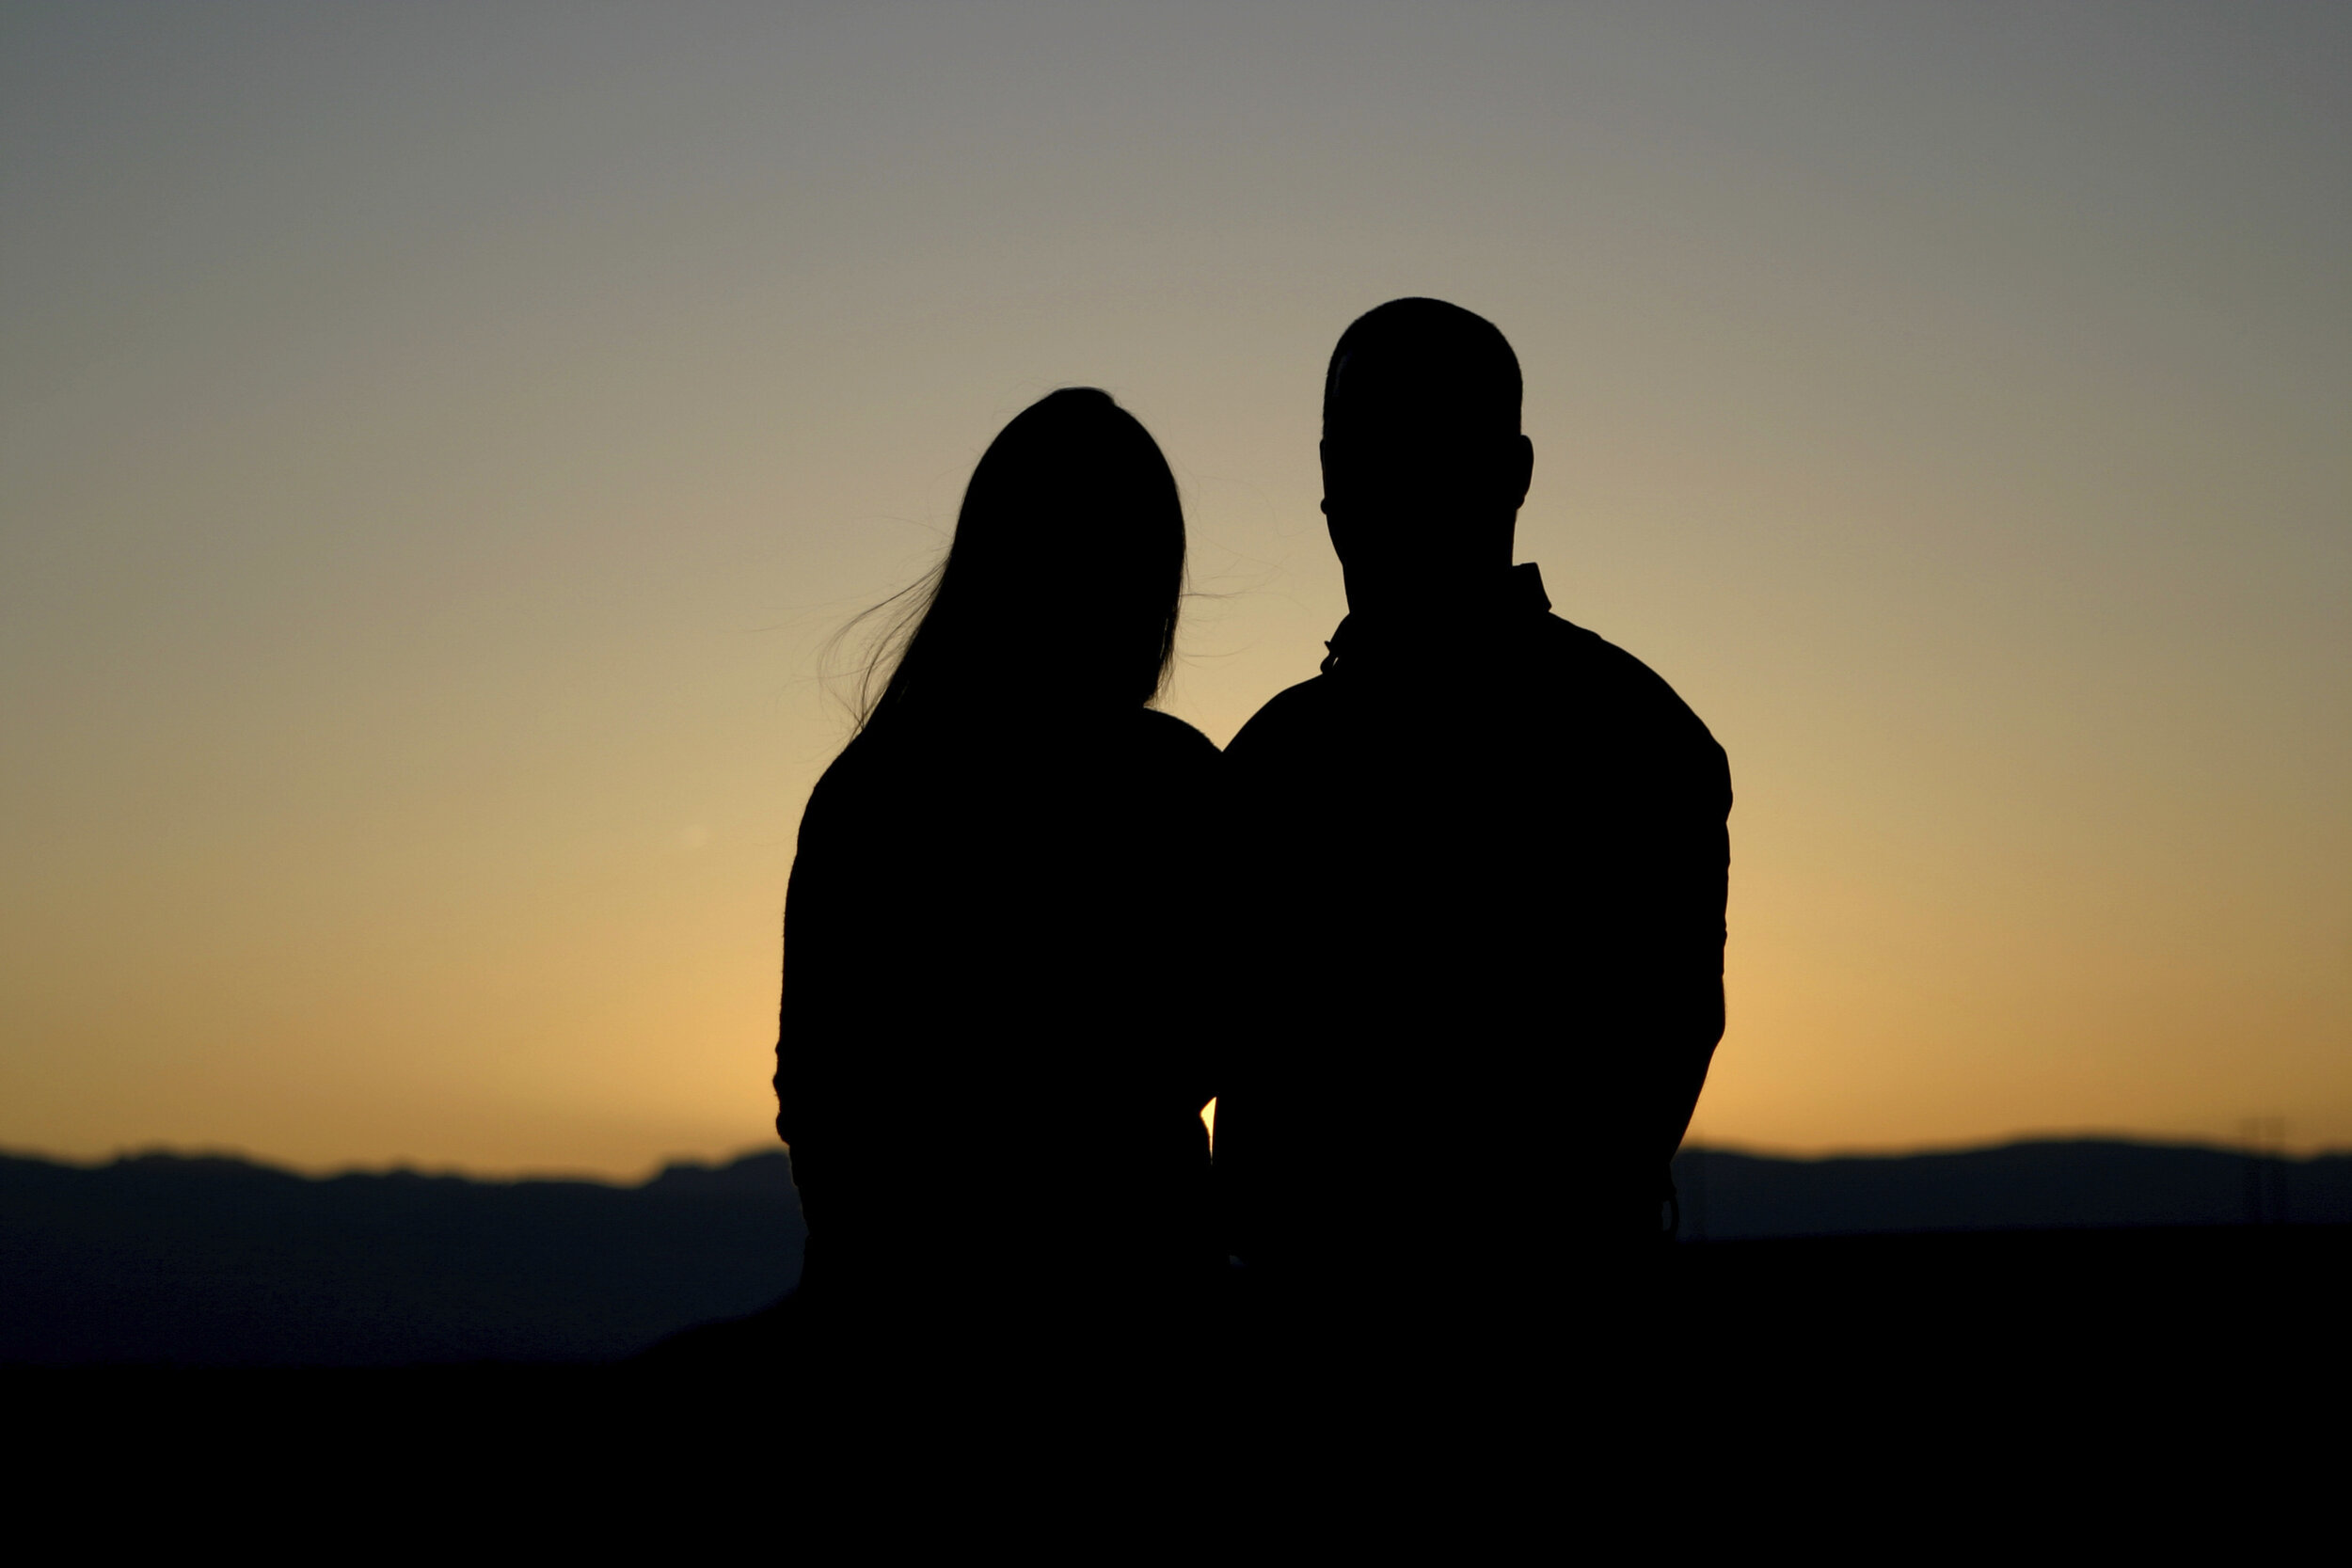 Silhouette of a couple against a sunset background